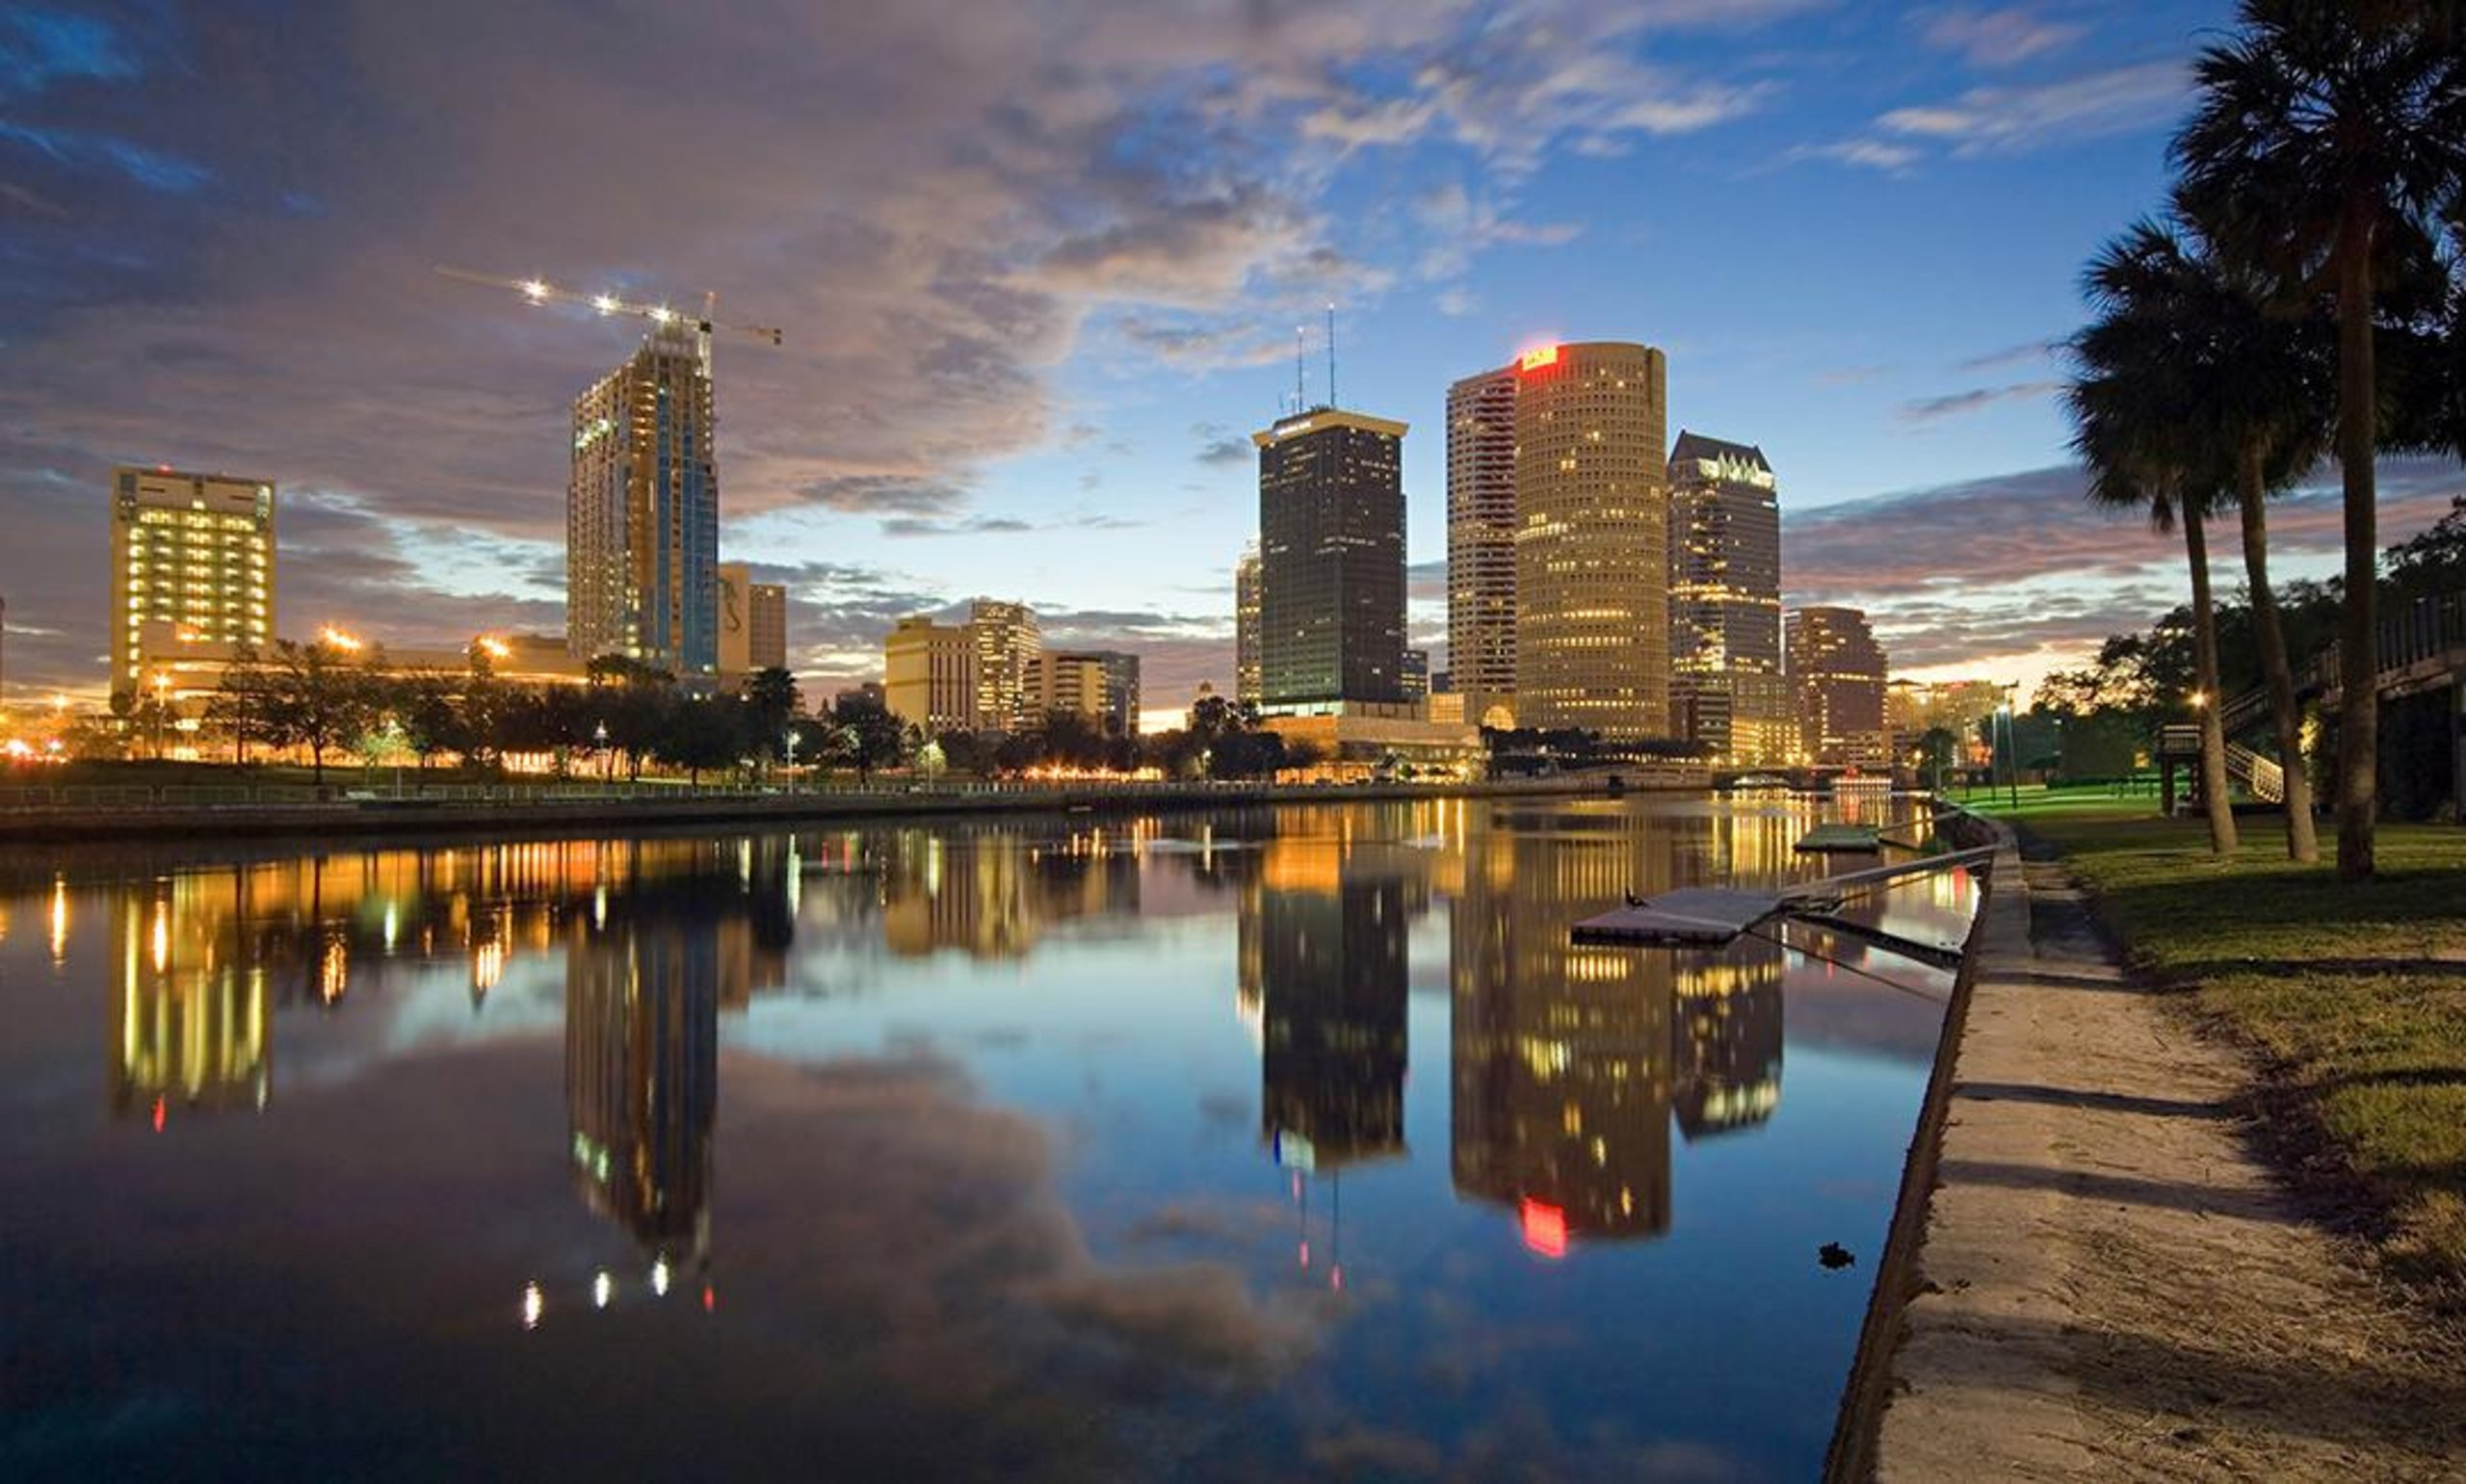 Tampa's skyline in the evening